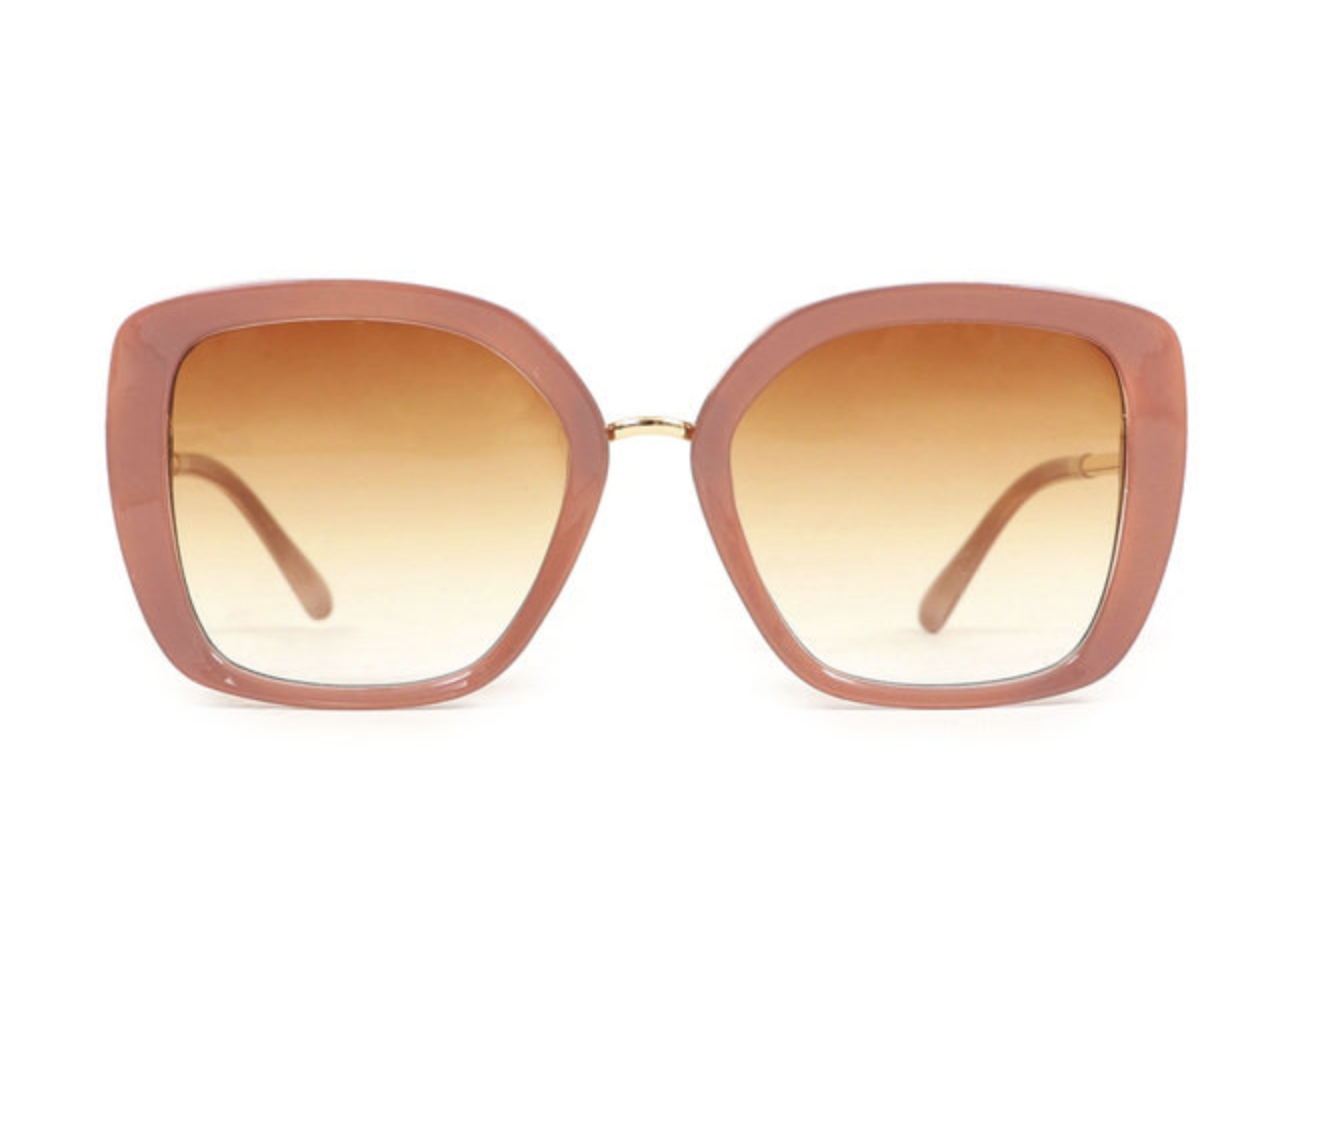 Powder Serenity Sunglasses